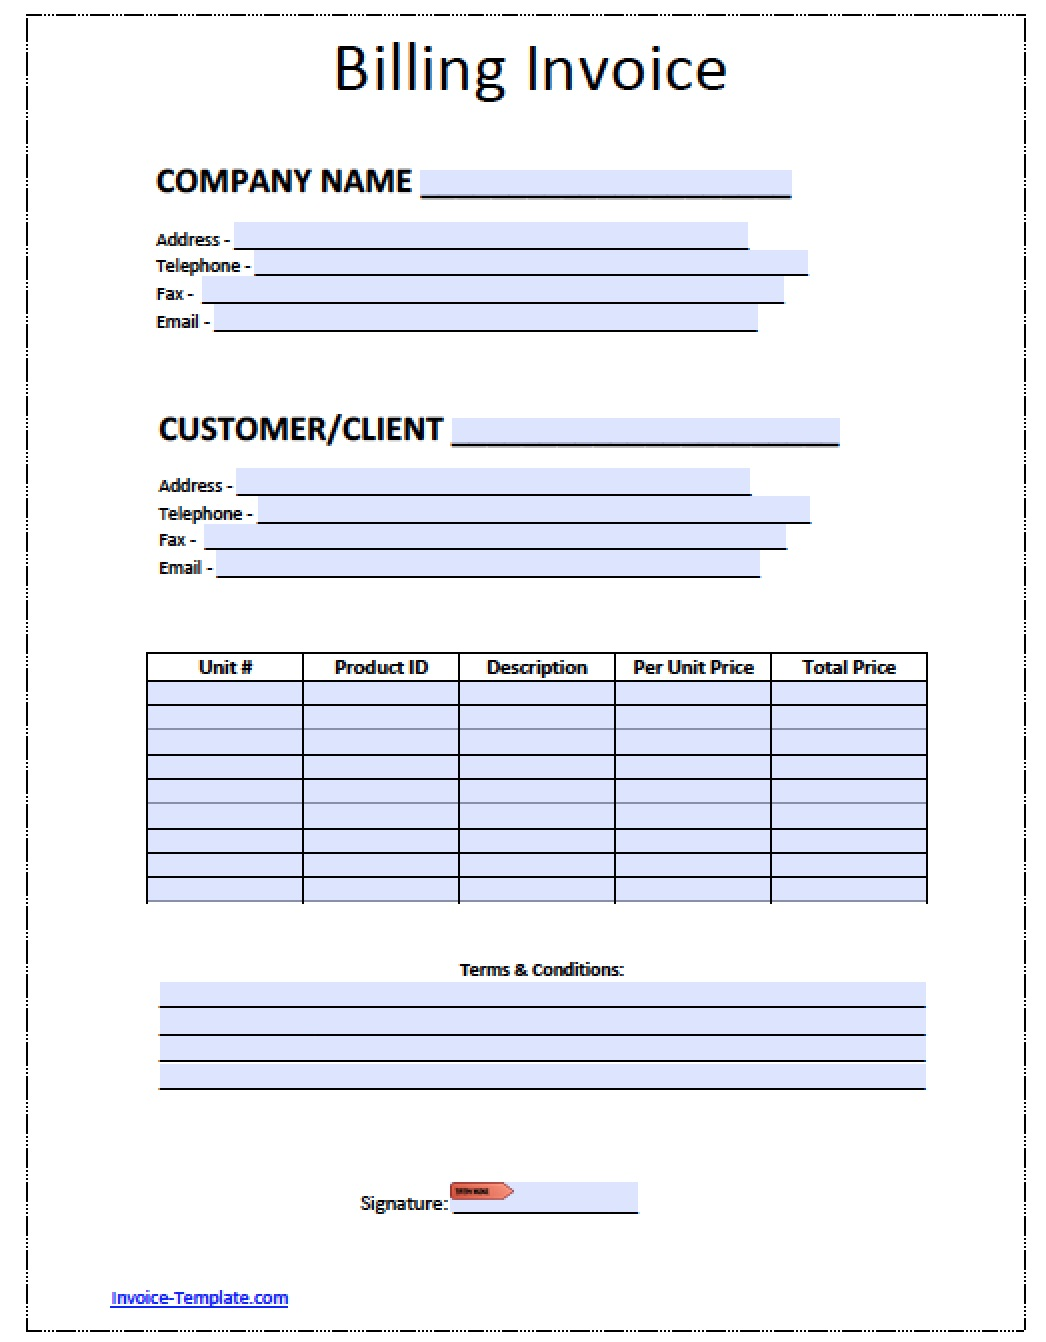 Sandiegolocksmithsus  Surprising Billing Invoice Invoices Faq U Cloudflare Support Billing  With Gorgeous Free Billing Invoice Template  Excel  Pdf  Word Doc  Billing With Astonishing Ups International Commercial Invoice Form Also Invoice Systems For Small Business In Addition Livingston Canada Customs Invoice And Sample Of Commercial Invoice As Well As Ms Word Invoice Template Free Download Additionally Credit Invoice Definition From Happytomco With Sandiegolocksmithsus  Gorgeous Billing Invoice Invoices Faq U Cloudflare Support Billing  With Astonishing Free Billing Invoice Template  Excel  Pdf  Word Doc  Billing And Surprising Ups International Commercial Invoice Form Also Invoice Systems For Small Business In Addition Livingston Canada Customs Invoice From Happytomco